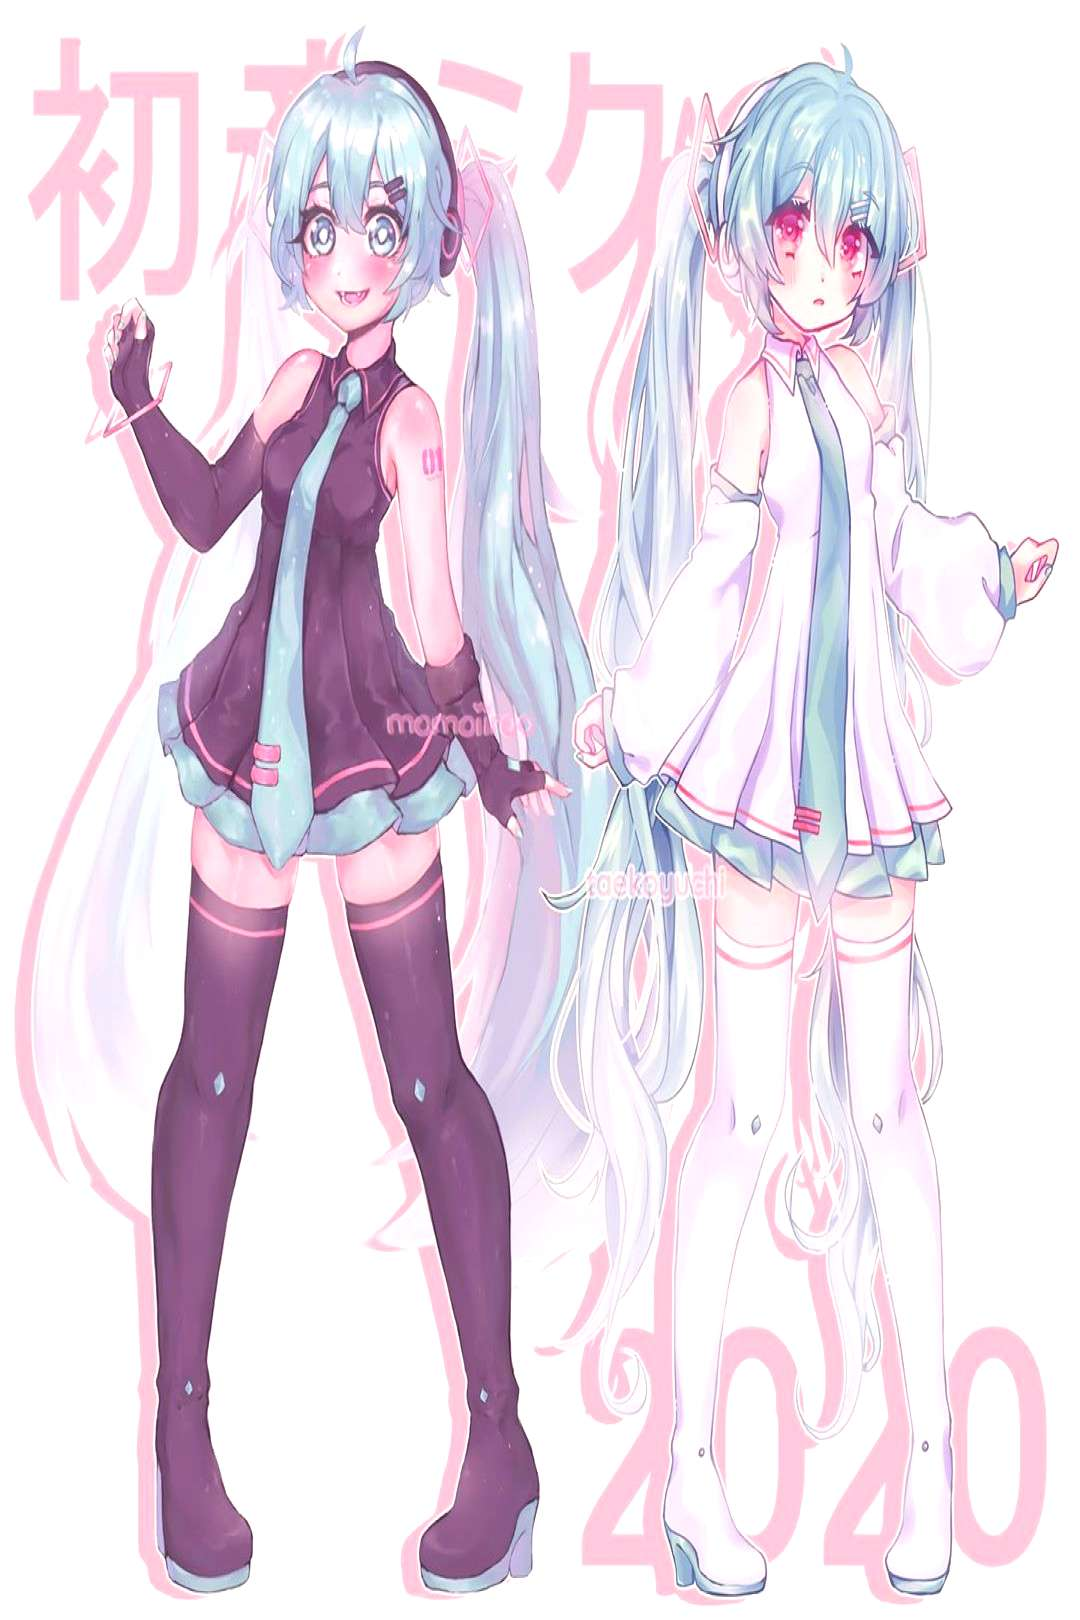 【 ミクミク ! 】 heh i collabed to redraw the sour mikus wi